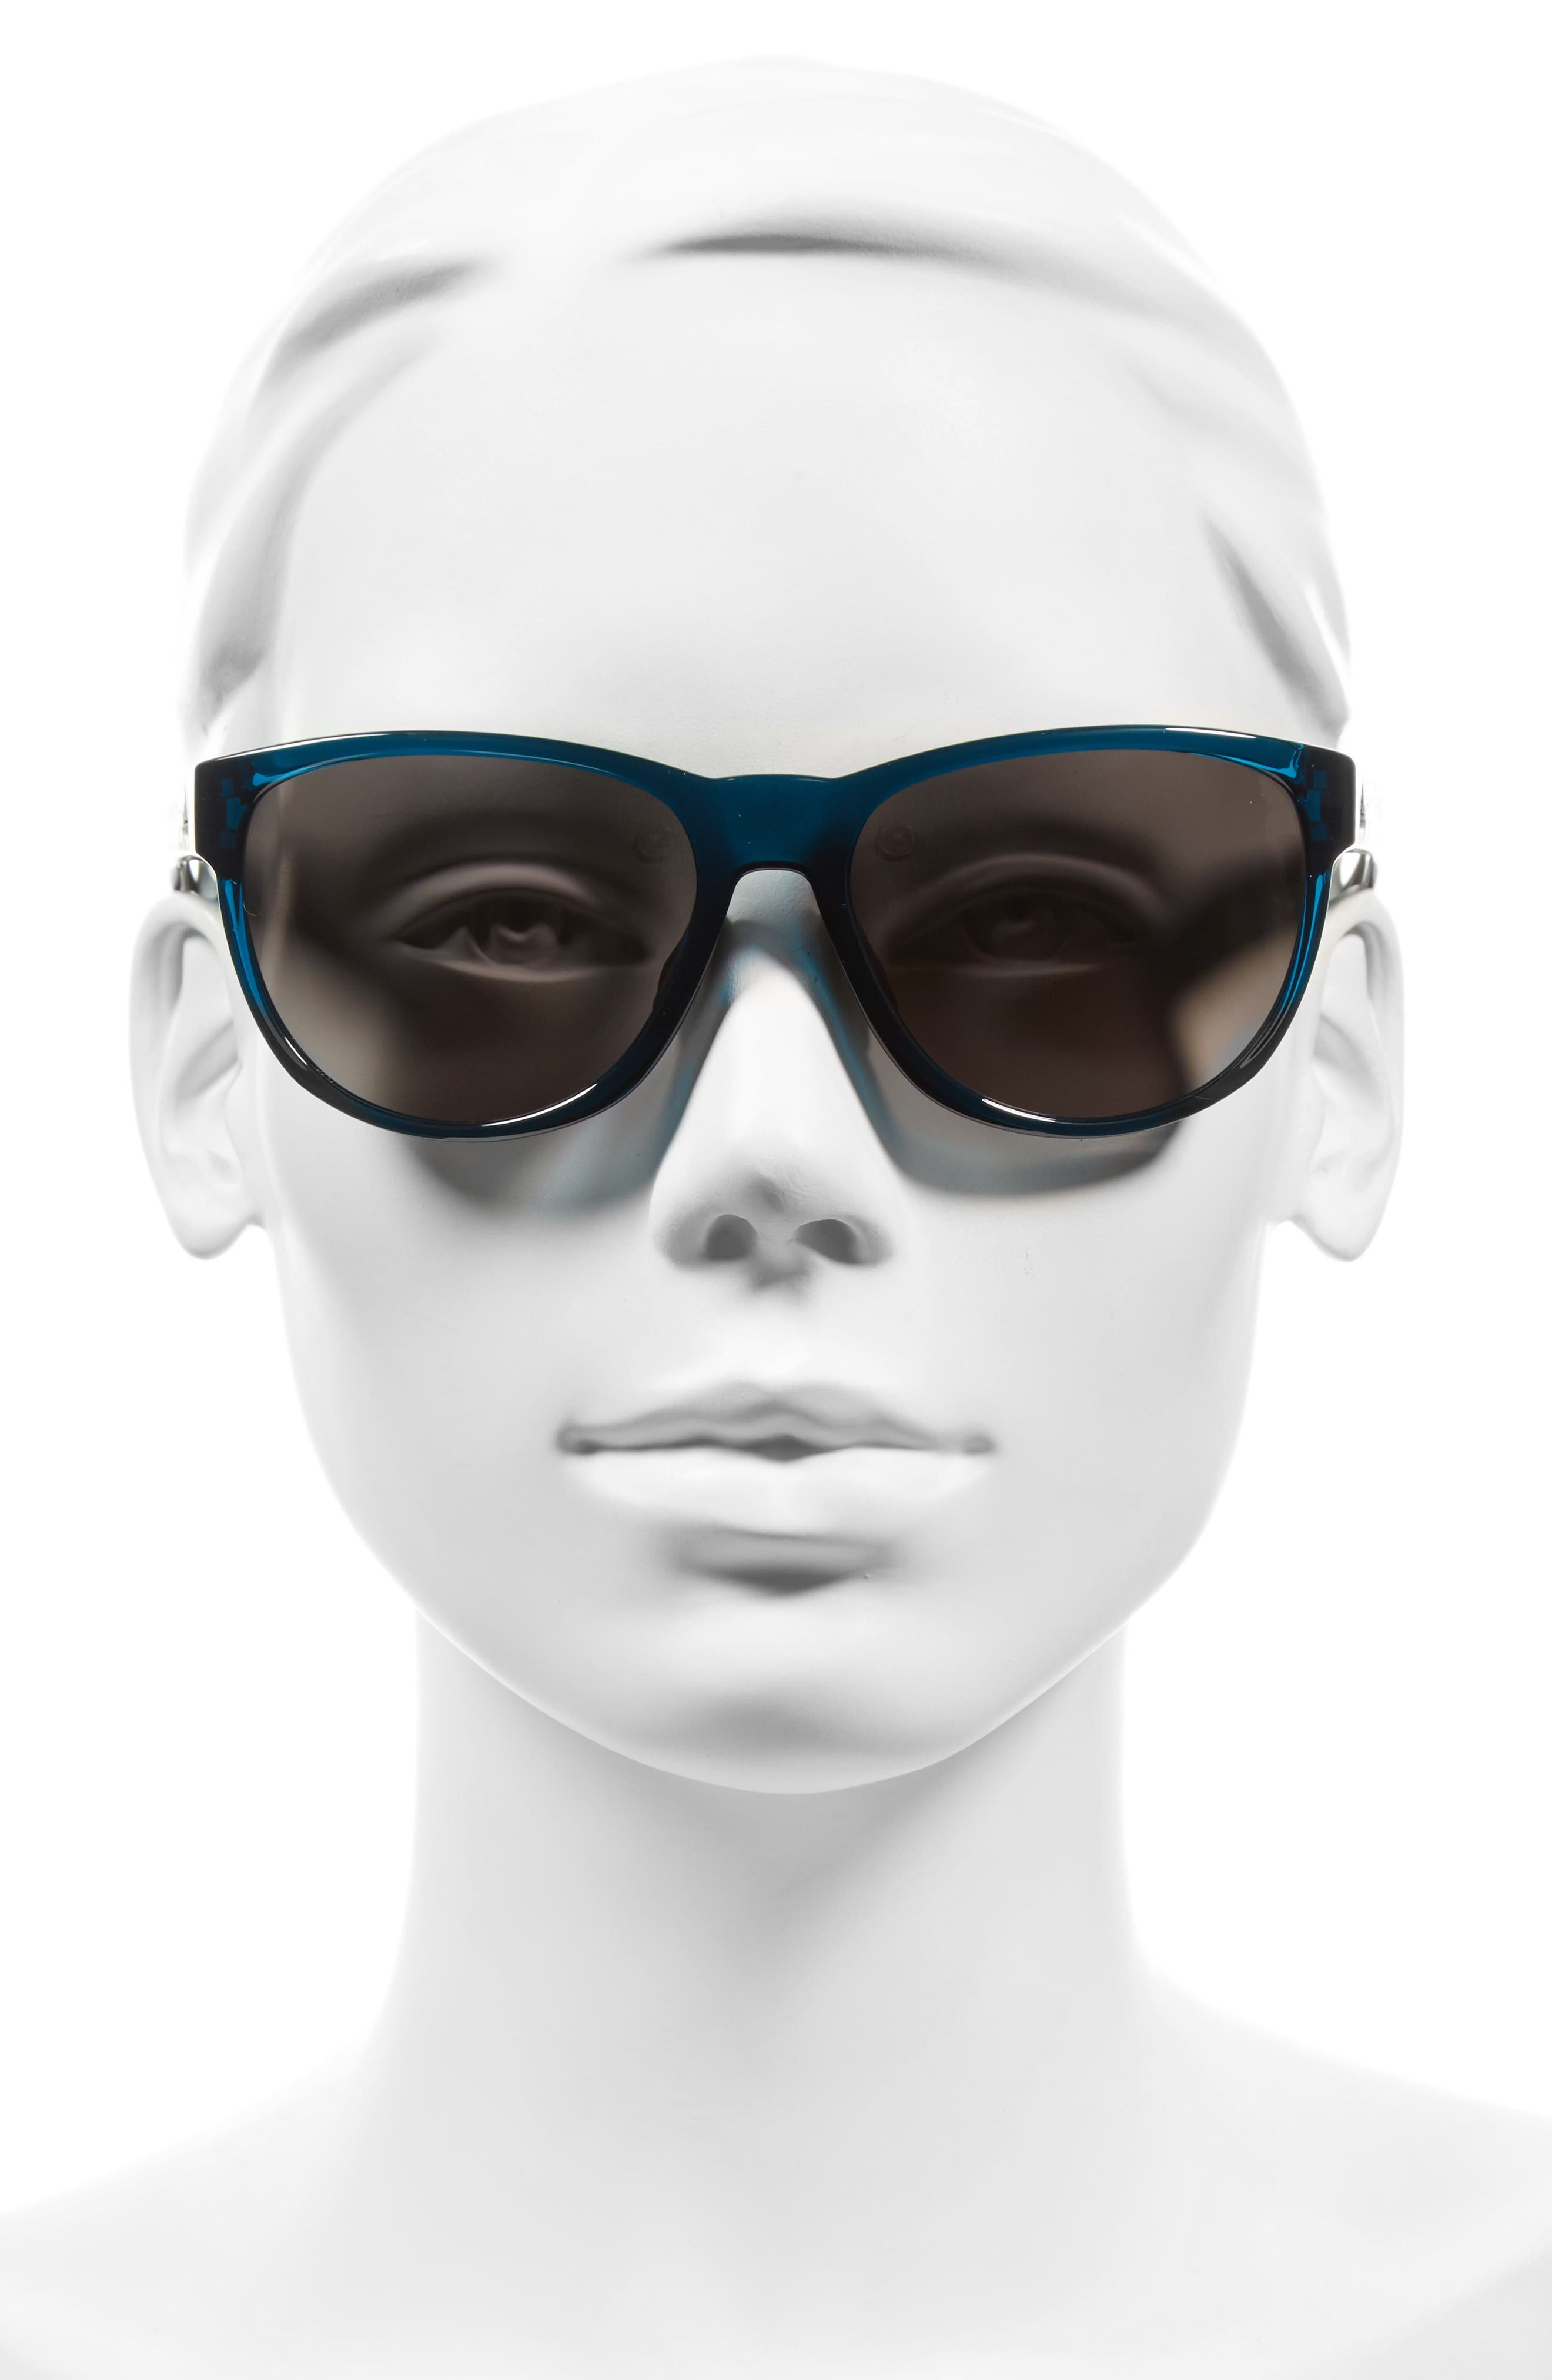 Wildcharge 61mm Mirrored Sunglasses,                             Alternate thumbnail 2, color,                             Grey Blue/ Grey Mirror